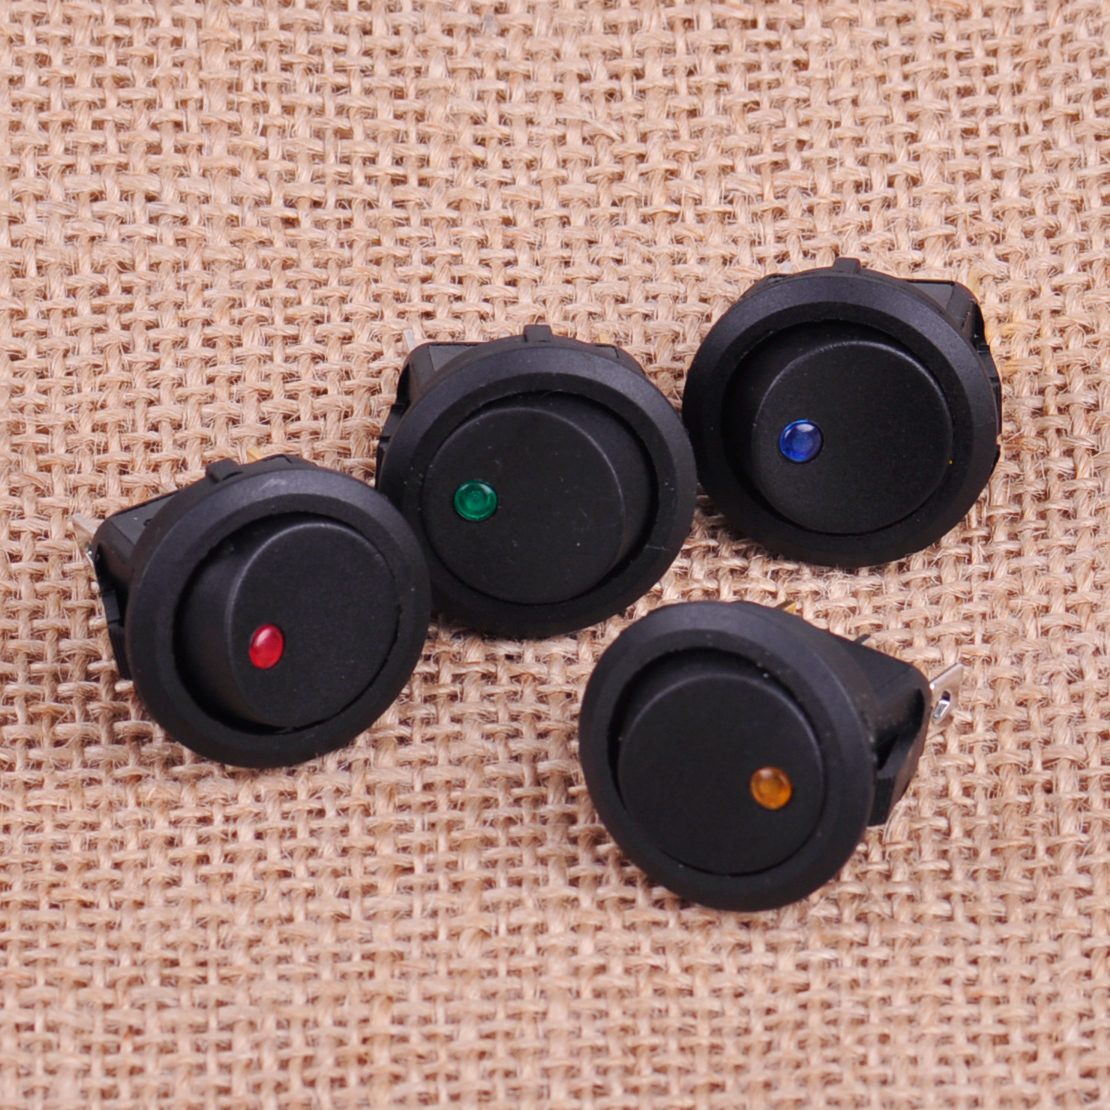 CITALL 4pcs 12V 3 Pins Car Auto Boat On / Off Round Dot LED Light Rocker Toggle SPST Switch for Flashing Chassis Dome Lights